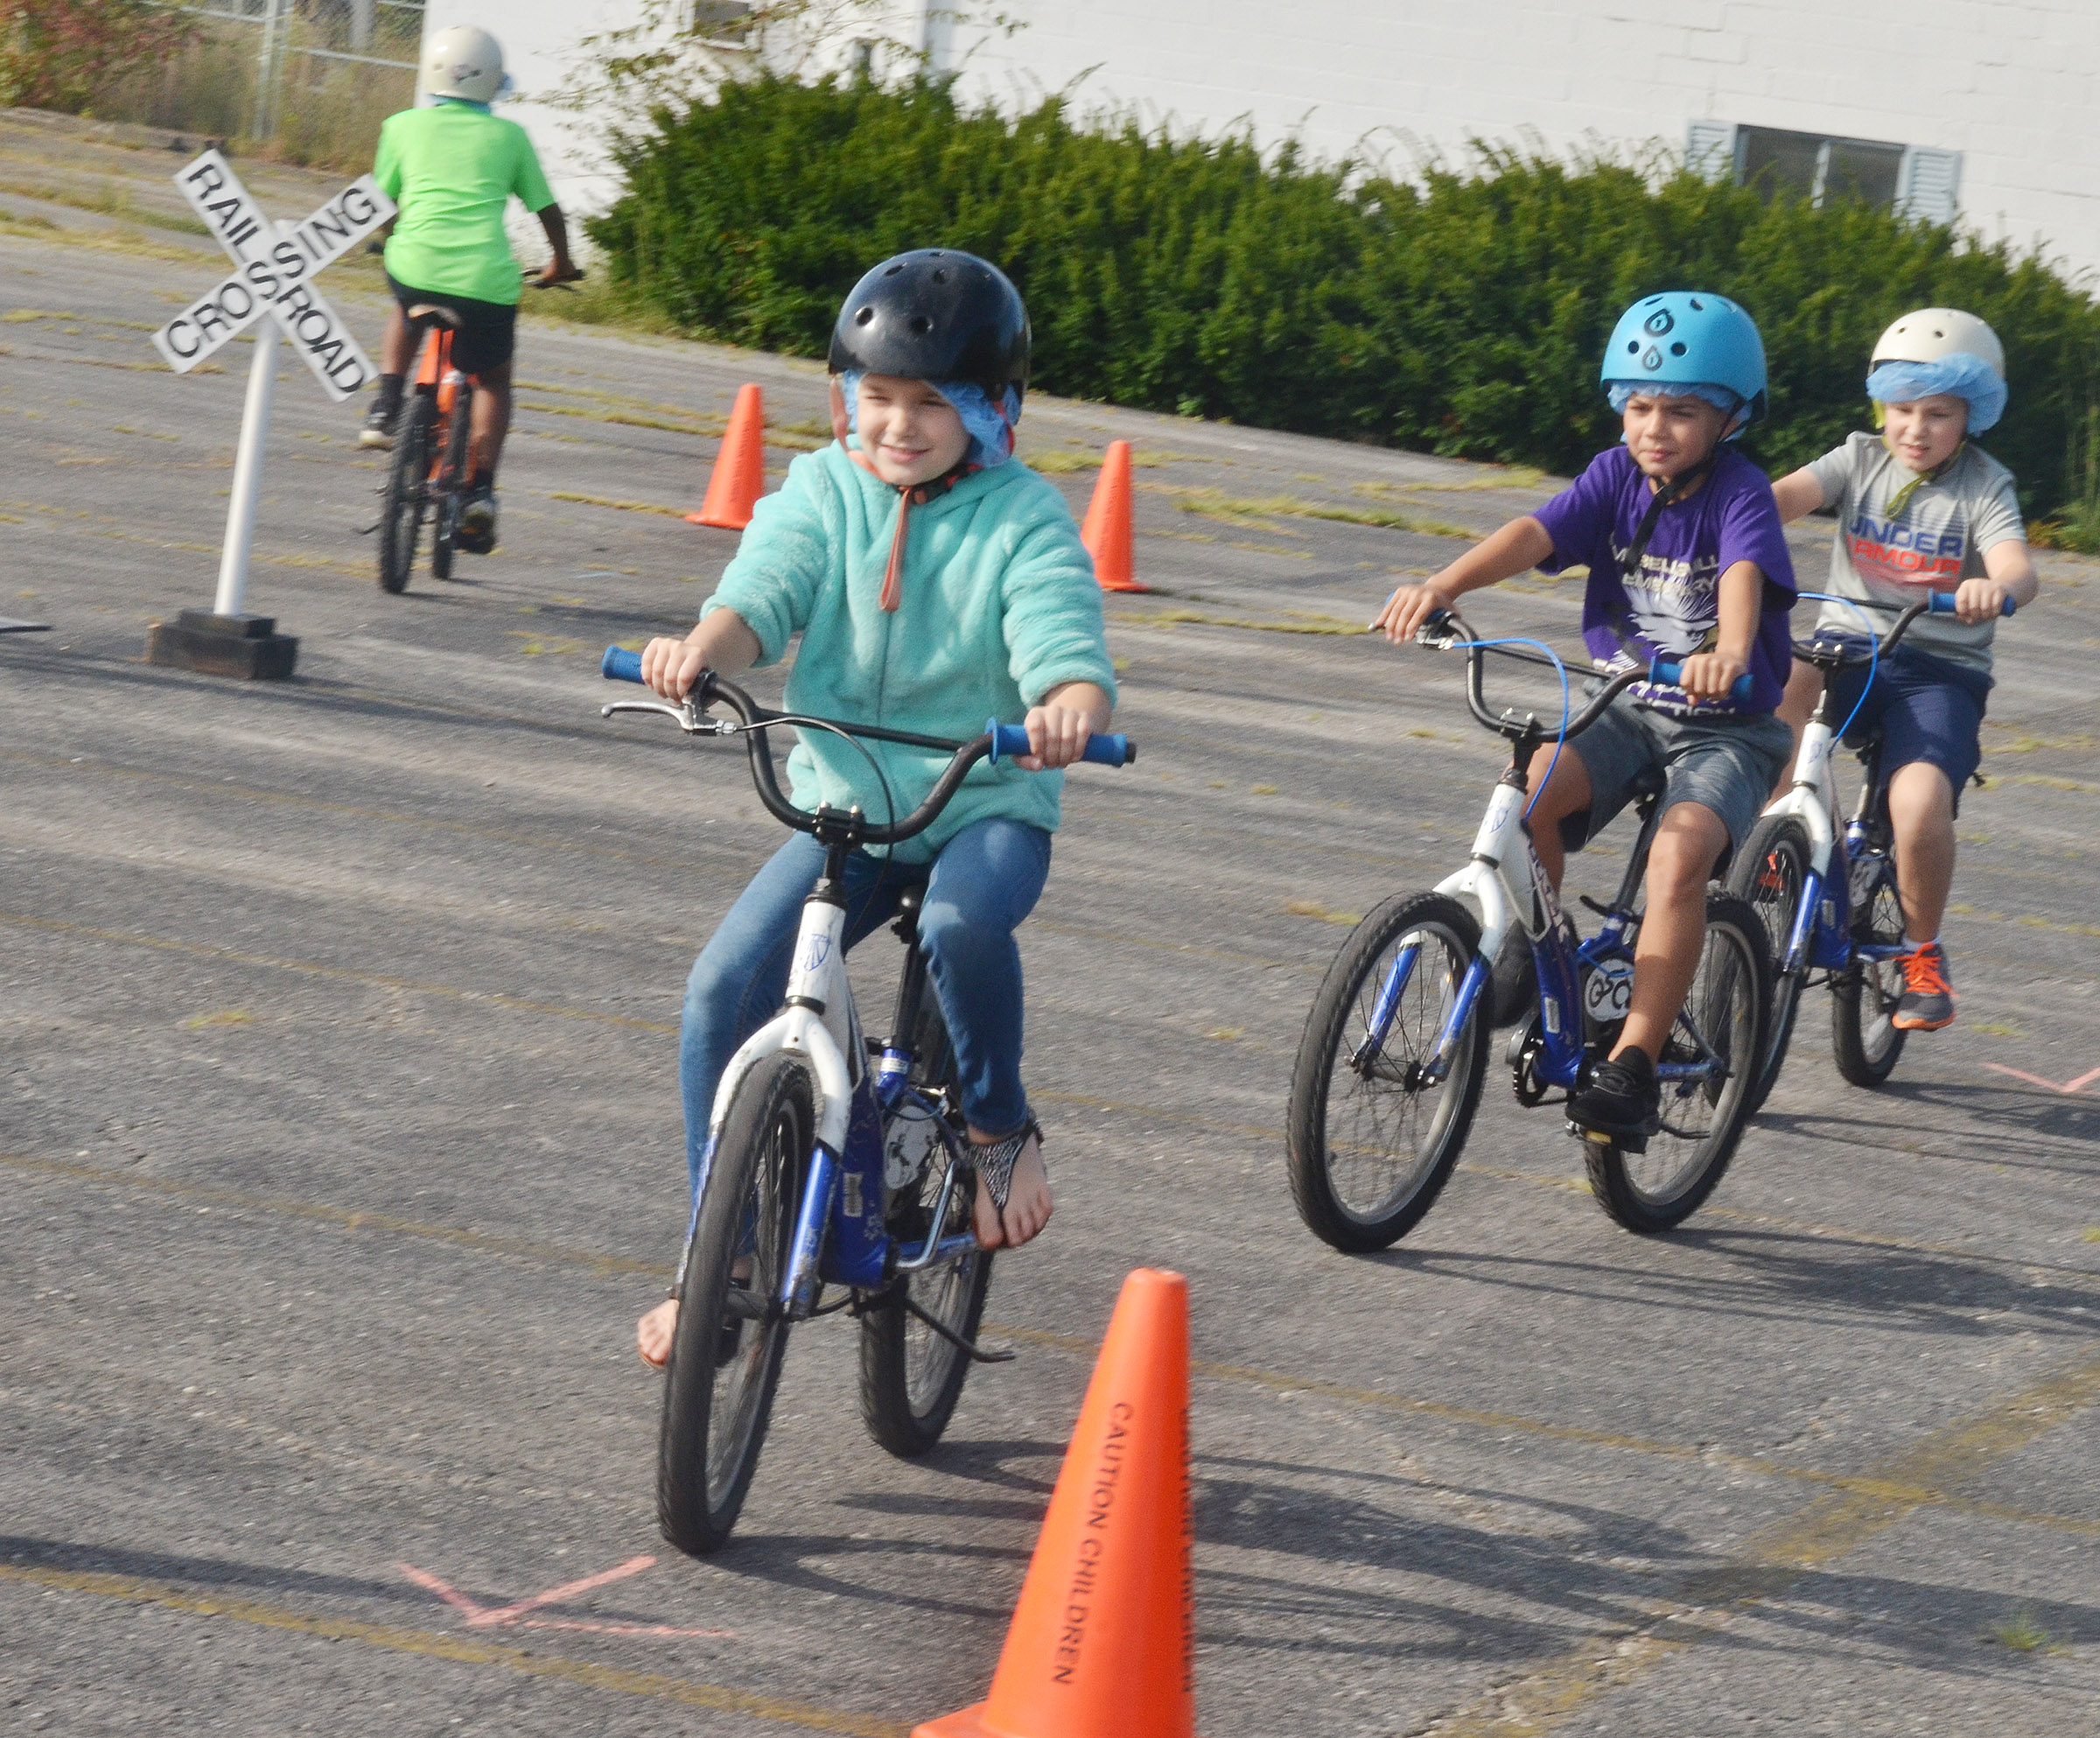 CES fourth-graders, from left, Destiny Abell, Easton Williams and Grayson Dooley obey bicycles rules.